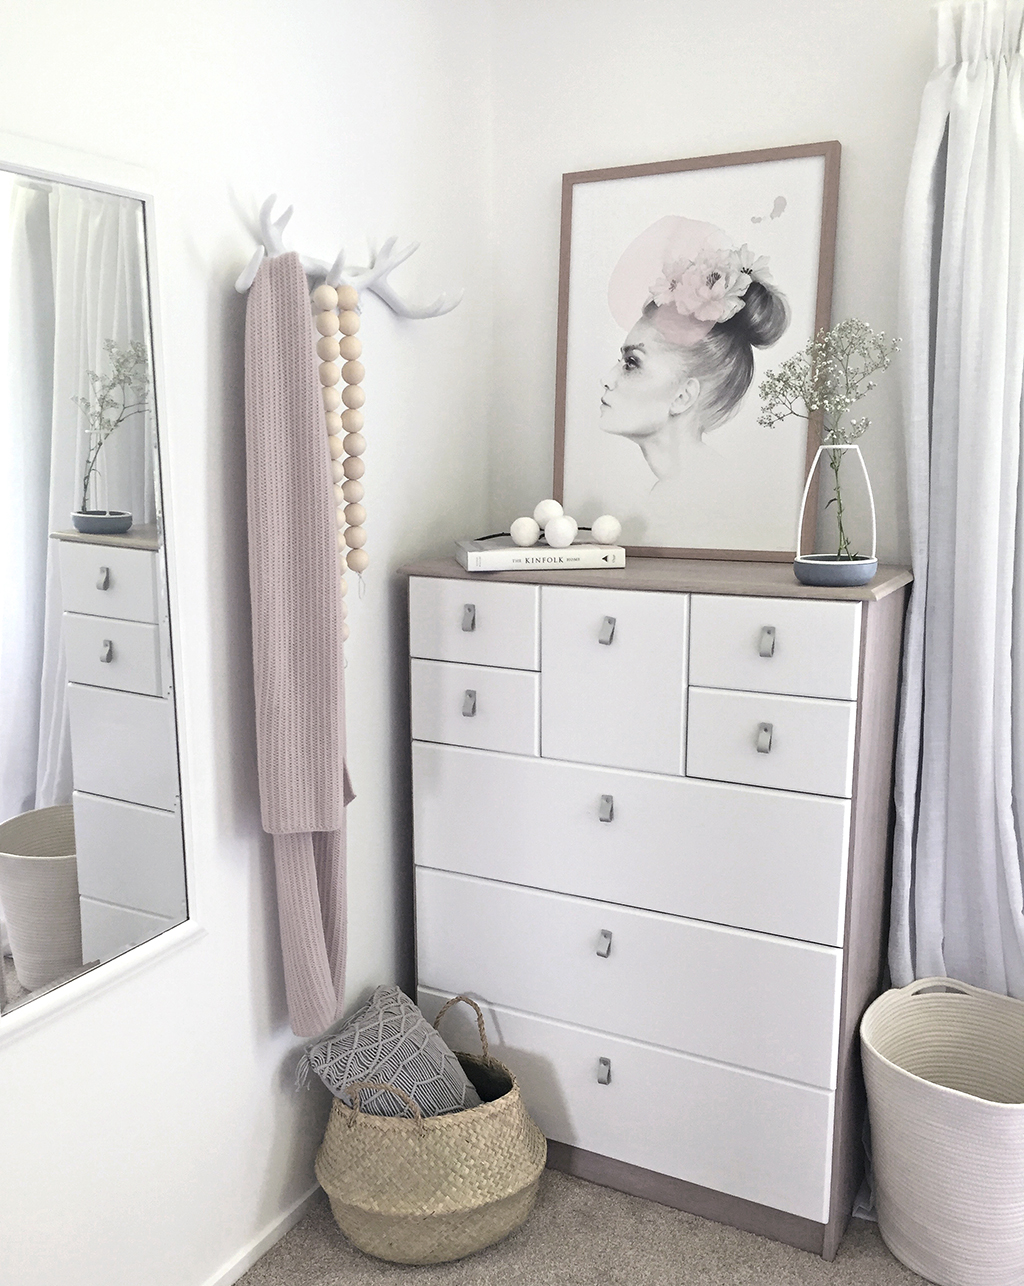 low-Res_Styled6_Clever_Poppy_Bedroom_Makeover.jpg